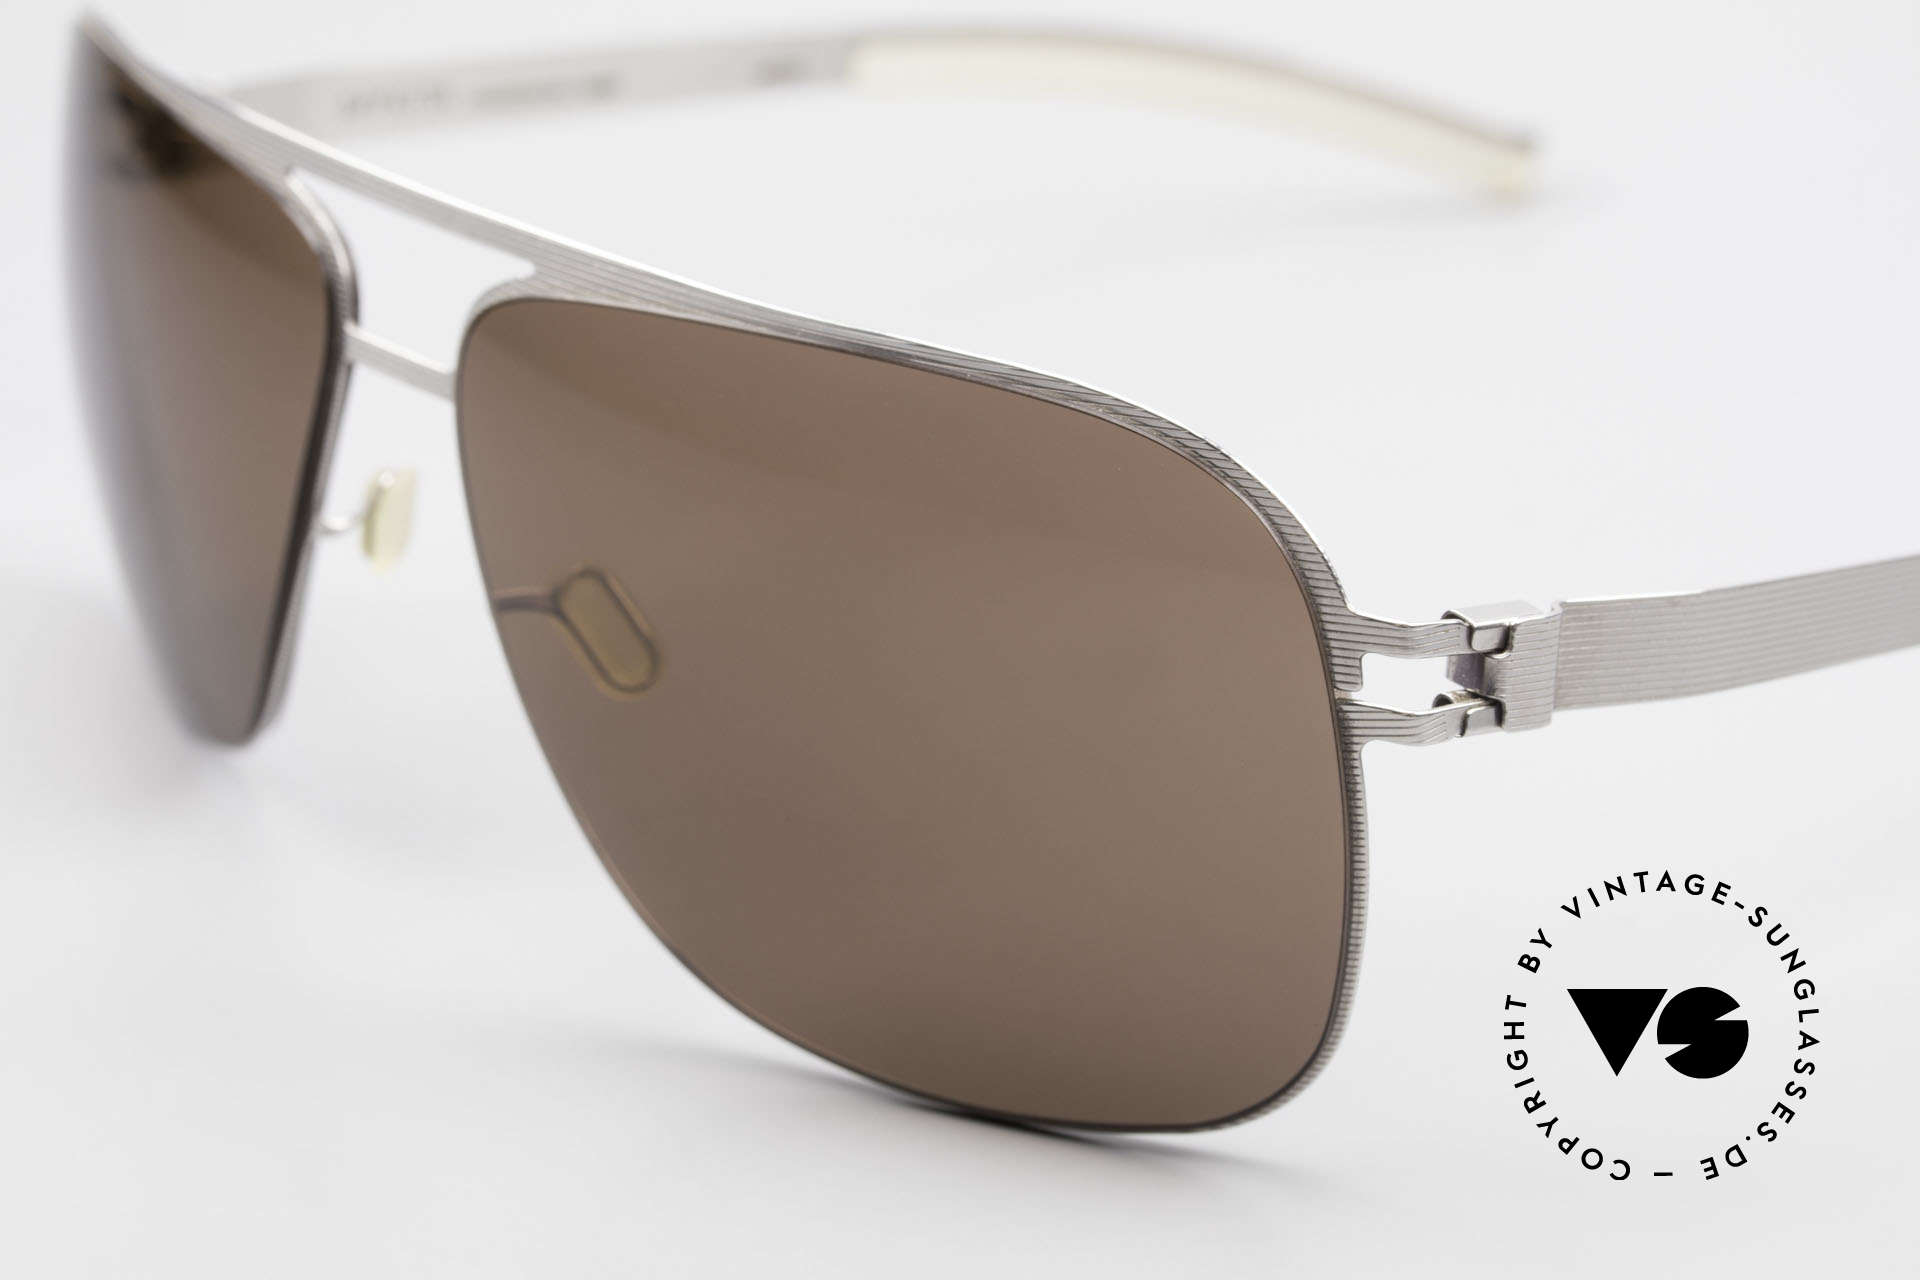 Mykita Luke Rare Designer Shades 2008's, flexible metal frame = innovative and elegant likewise, Made for Men